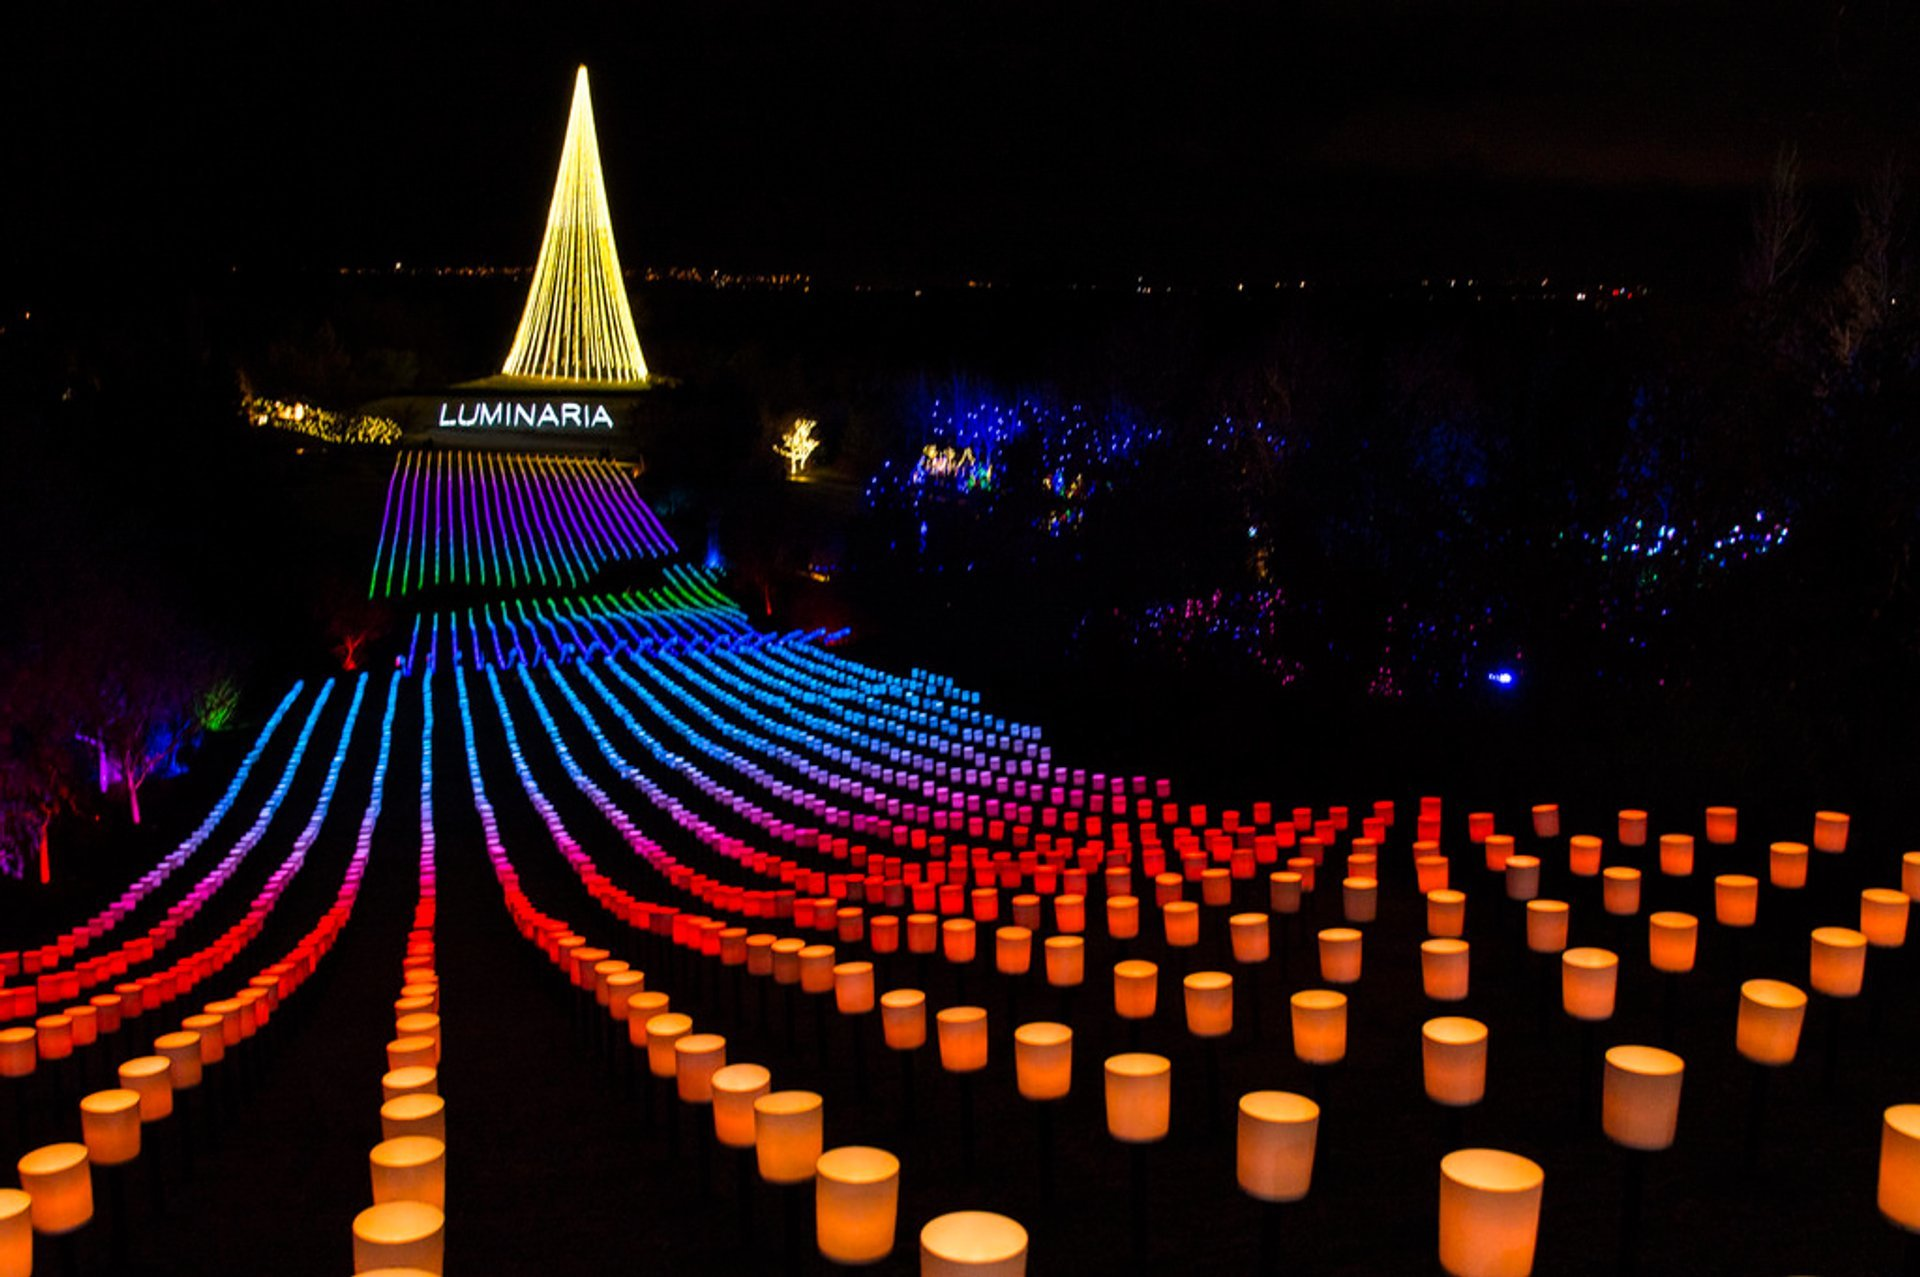 Luminaria Opening Display 2020